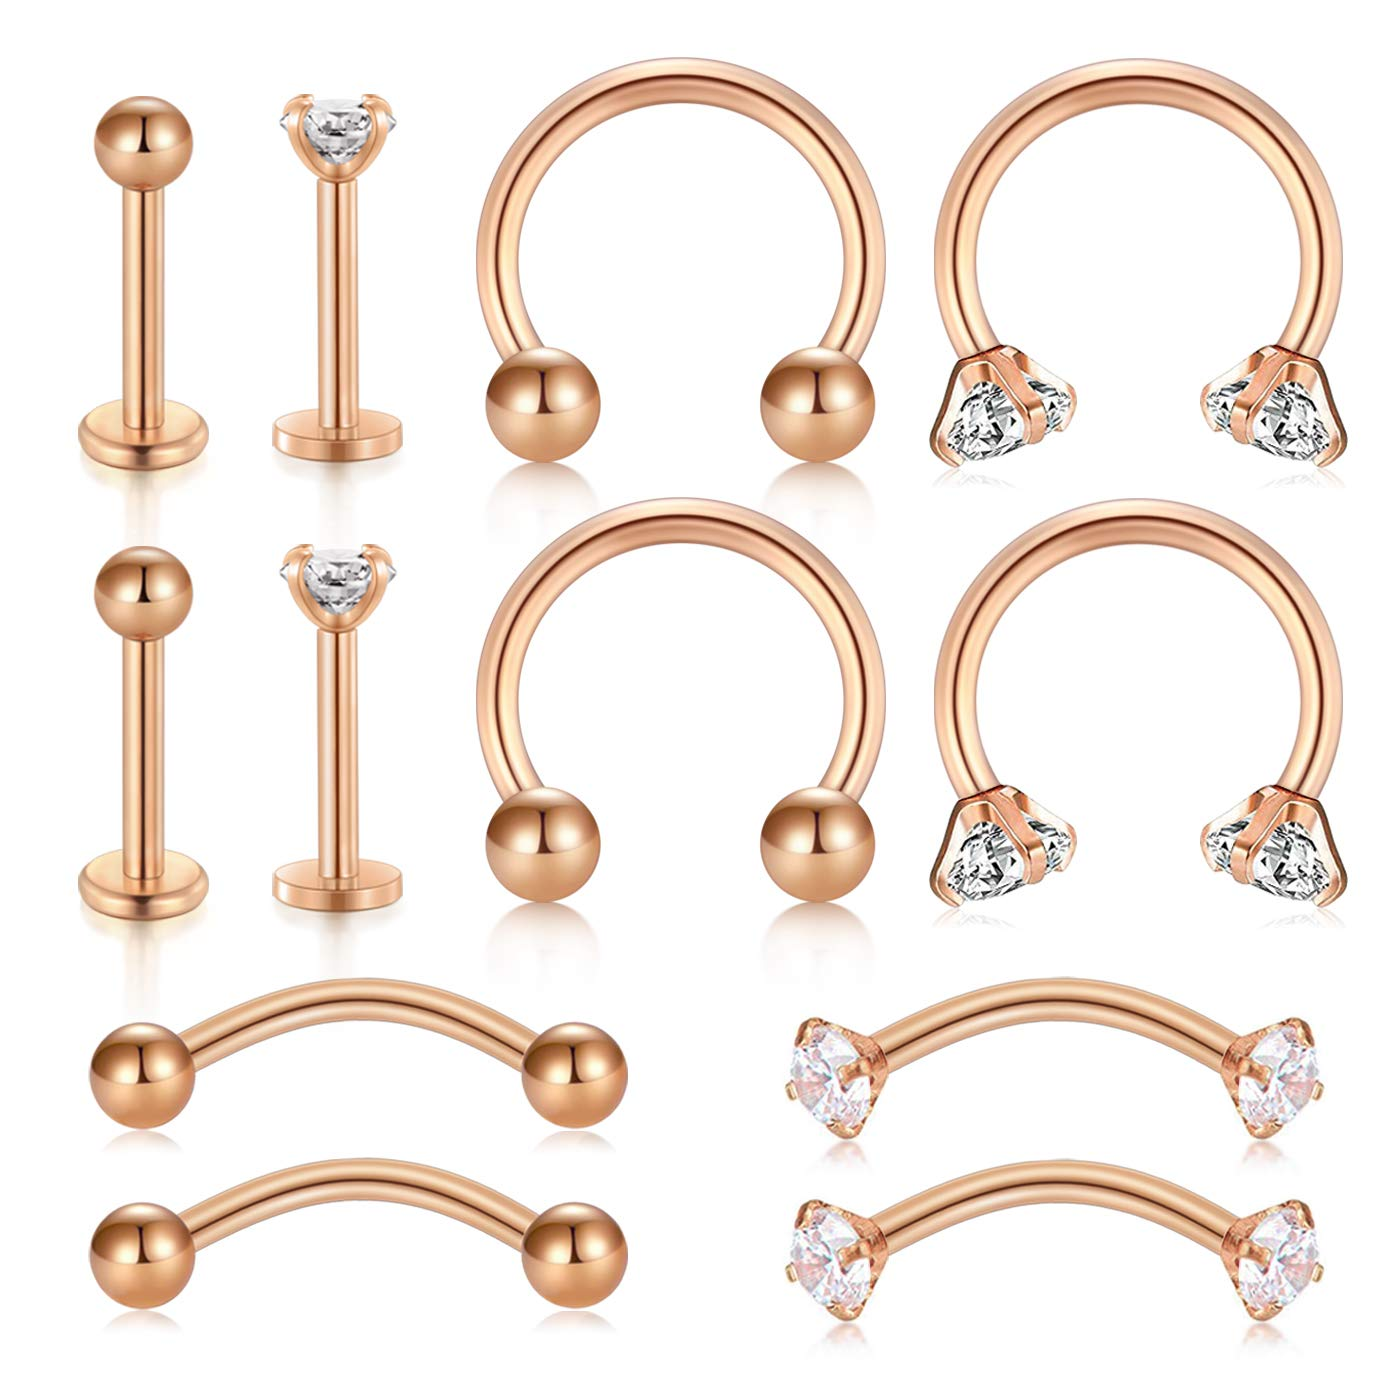 Briana Williams 16G Tragus Cartilage Helix Earrings Retainer Stainless Steel CZ Nose Rings Hoop Curved Barbell Eyebrow Rook Daith Piercing Horseshoe Nose Labret Lip Piercing Studs by Briana Williams